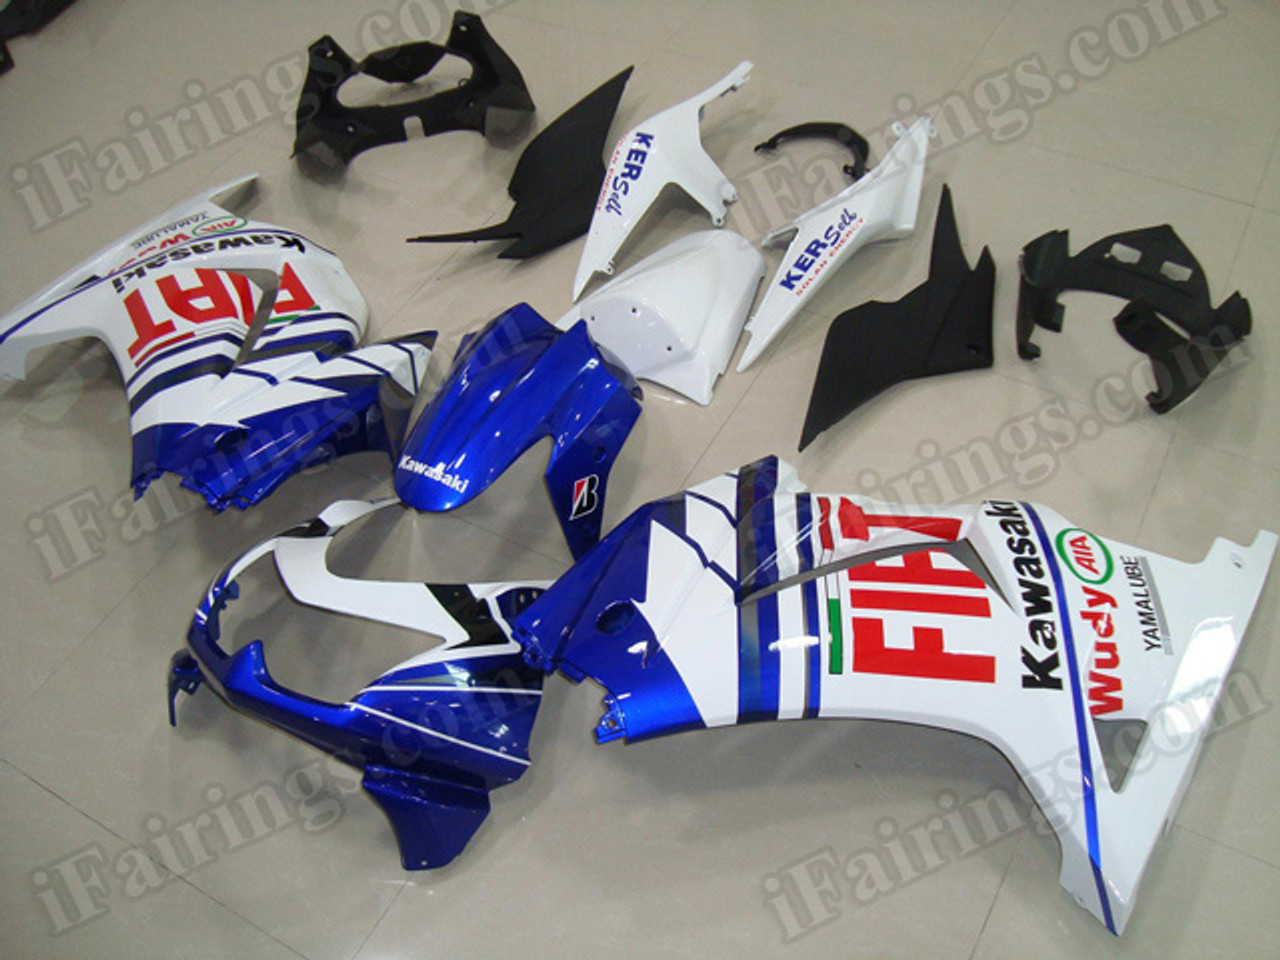 Oem Replacement Fairing Kits For Kawasaki Ninja 250r Ex250 2008 To 2012 With Fiat Decals